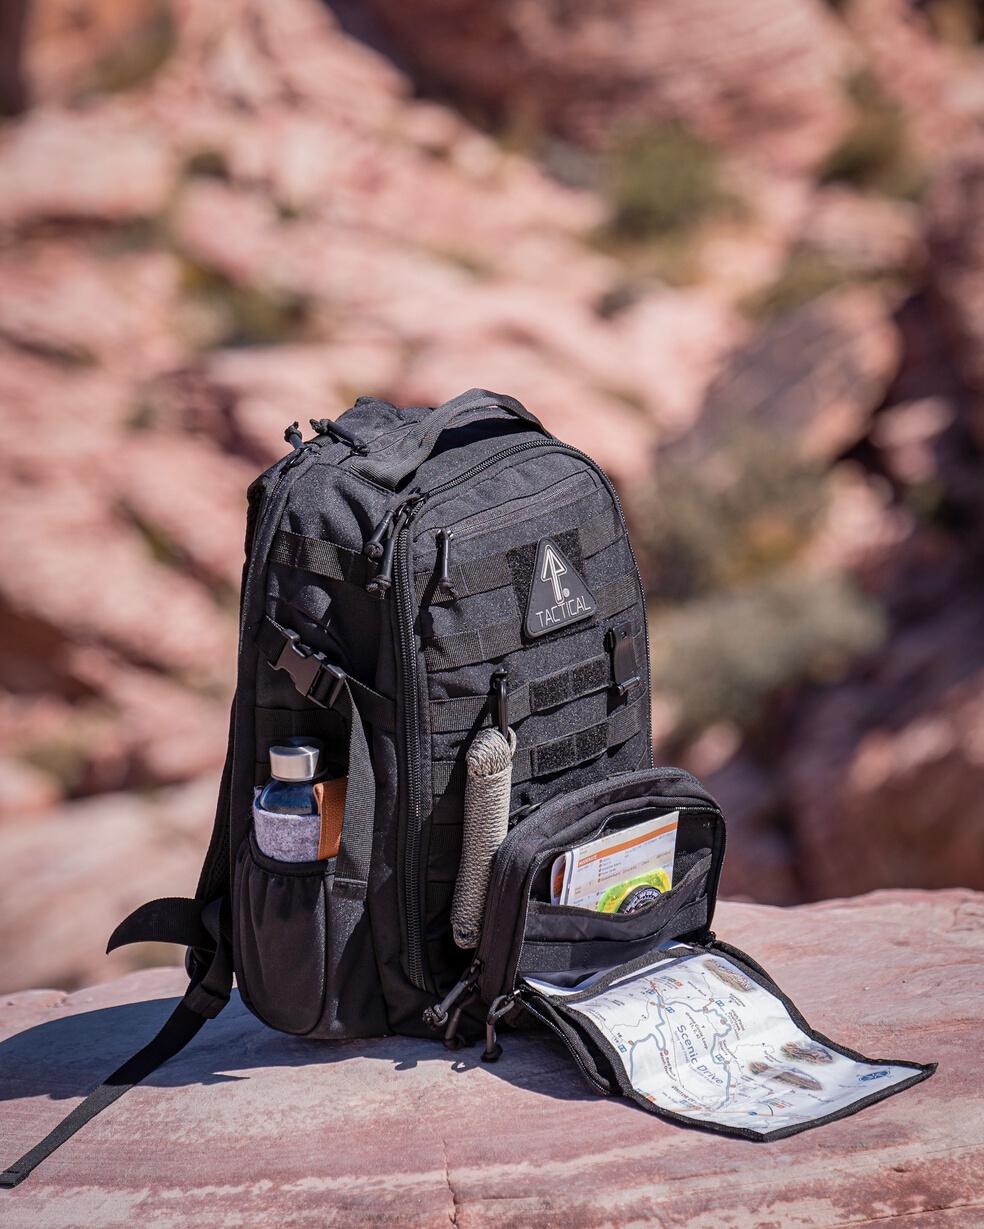 A 14er Tactical backpack that has been used for hiking.